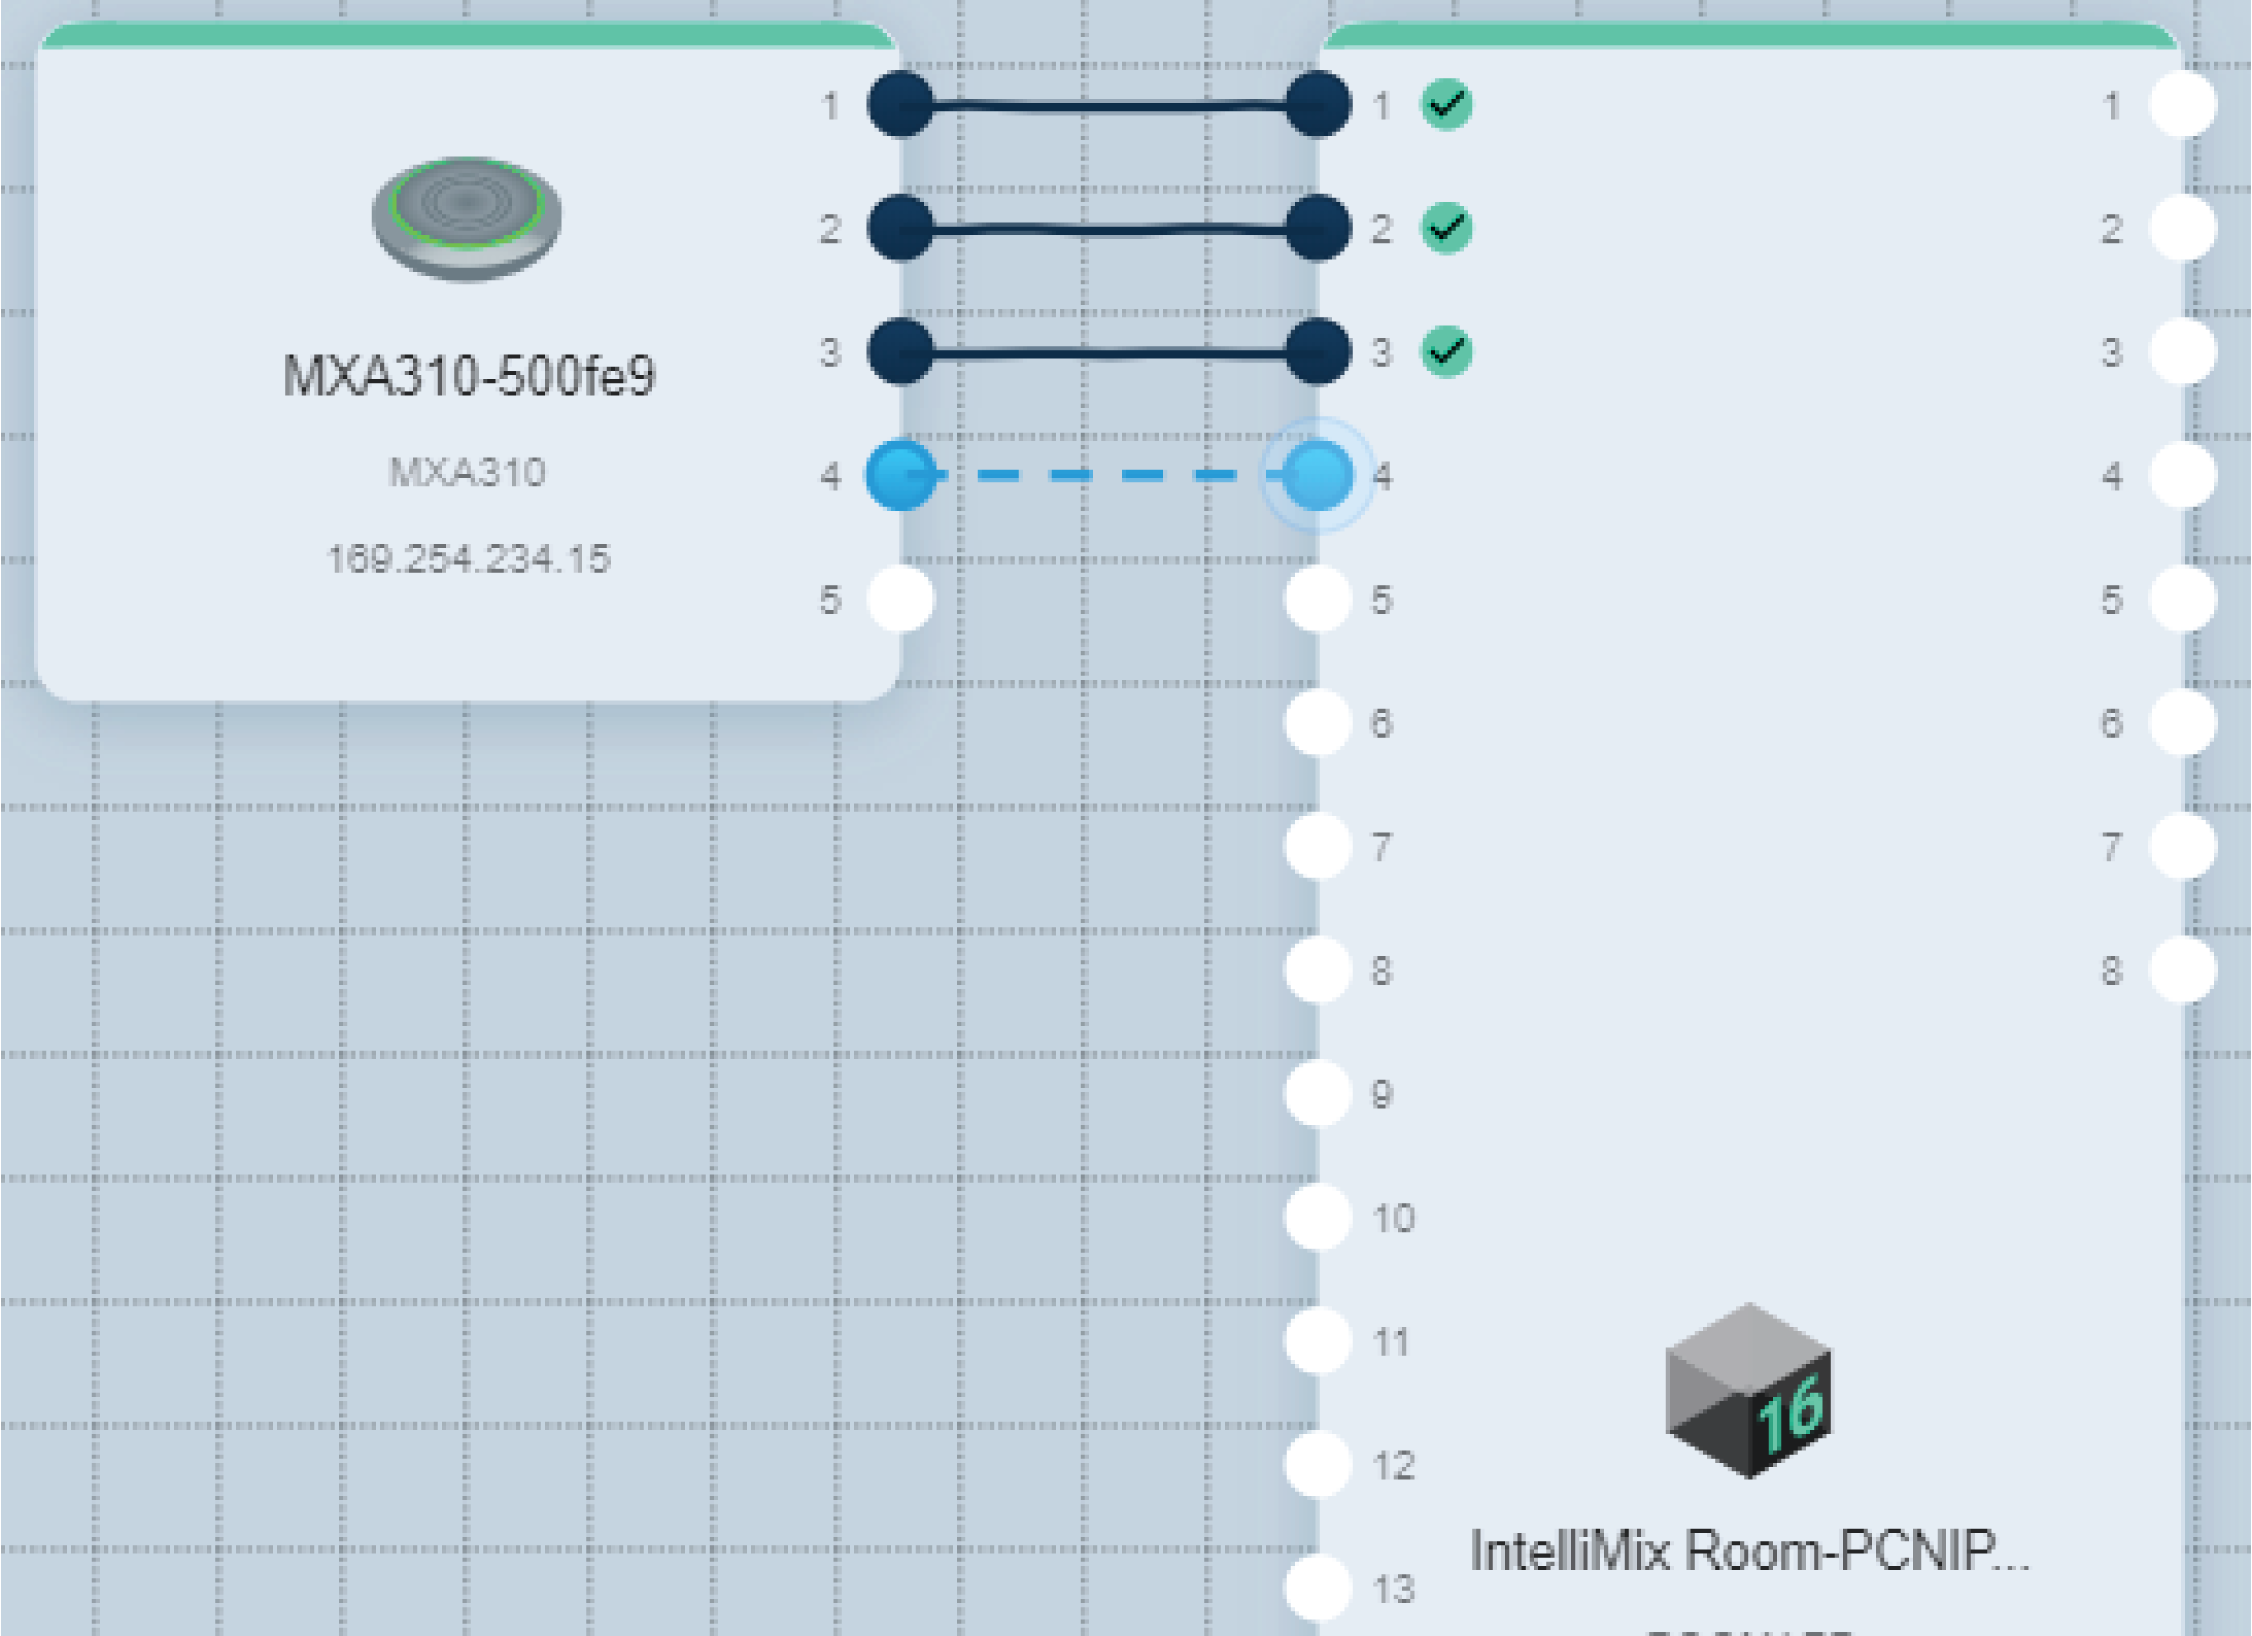 Screenshot showing how to route audio from an MXA310 to IntelliMix Room using Shure Designer software.